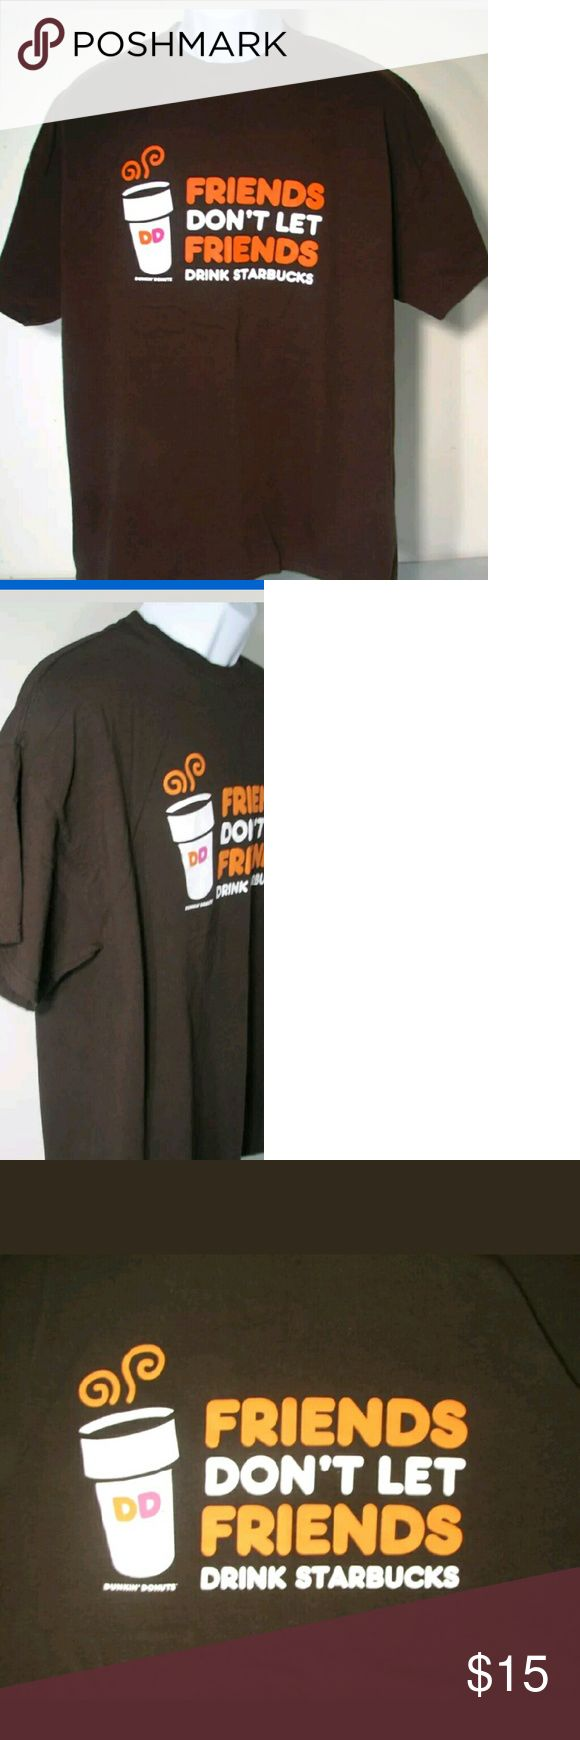 "Dunkin Donuts T Tee Shirt  Unisex Size XL Fun t shirt ""Friends Don't Let Friends Drink Starbucks""  Shirt is like new. I can't remember ever wearing it. Tops Tees - Short Sleeve"